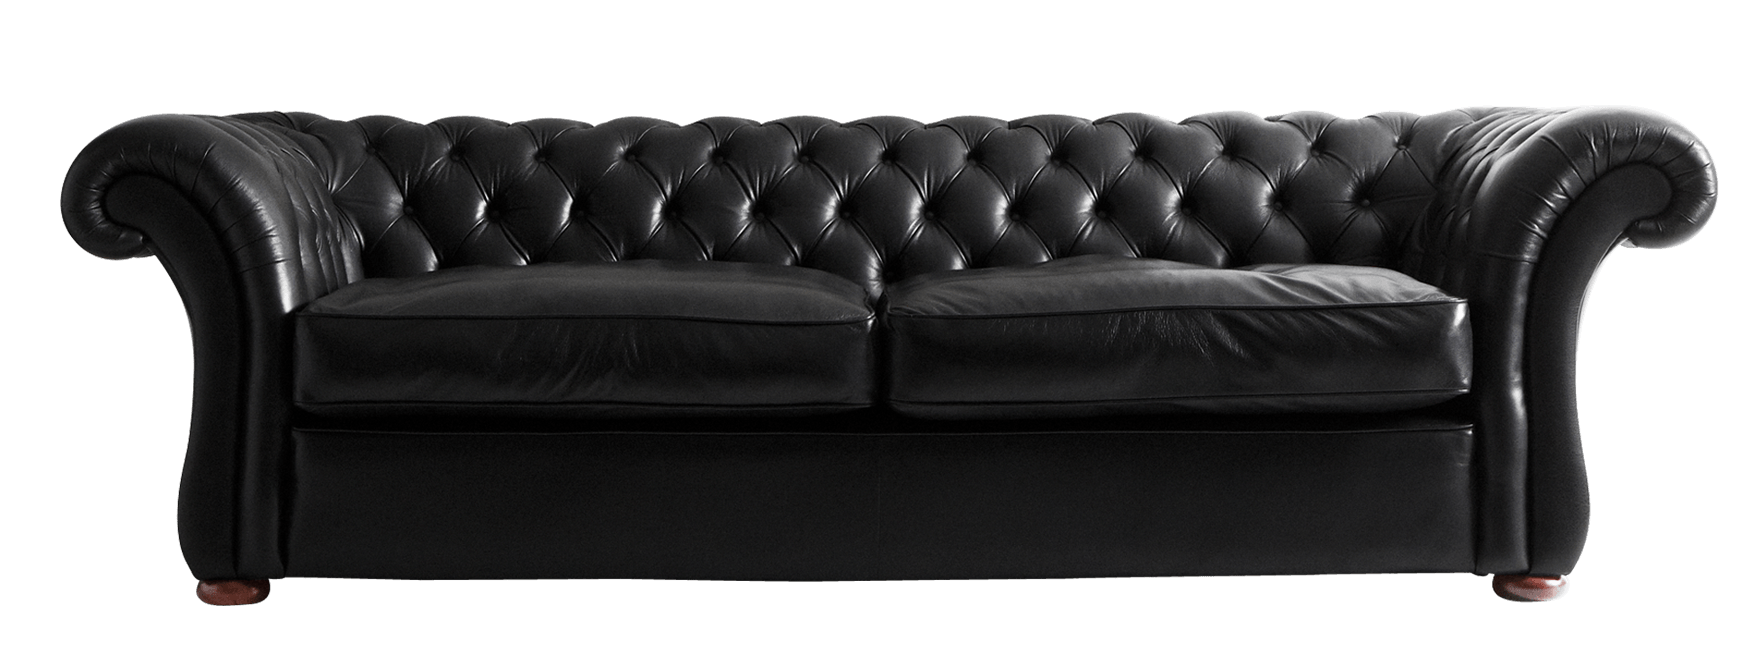 Black transparent png stickpng. Couch clipart leather sofa